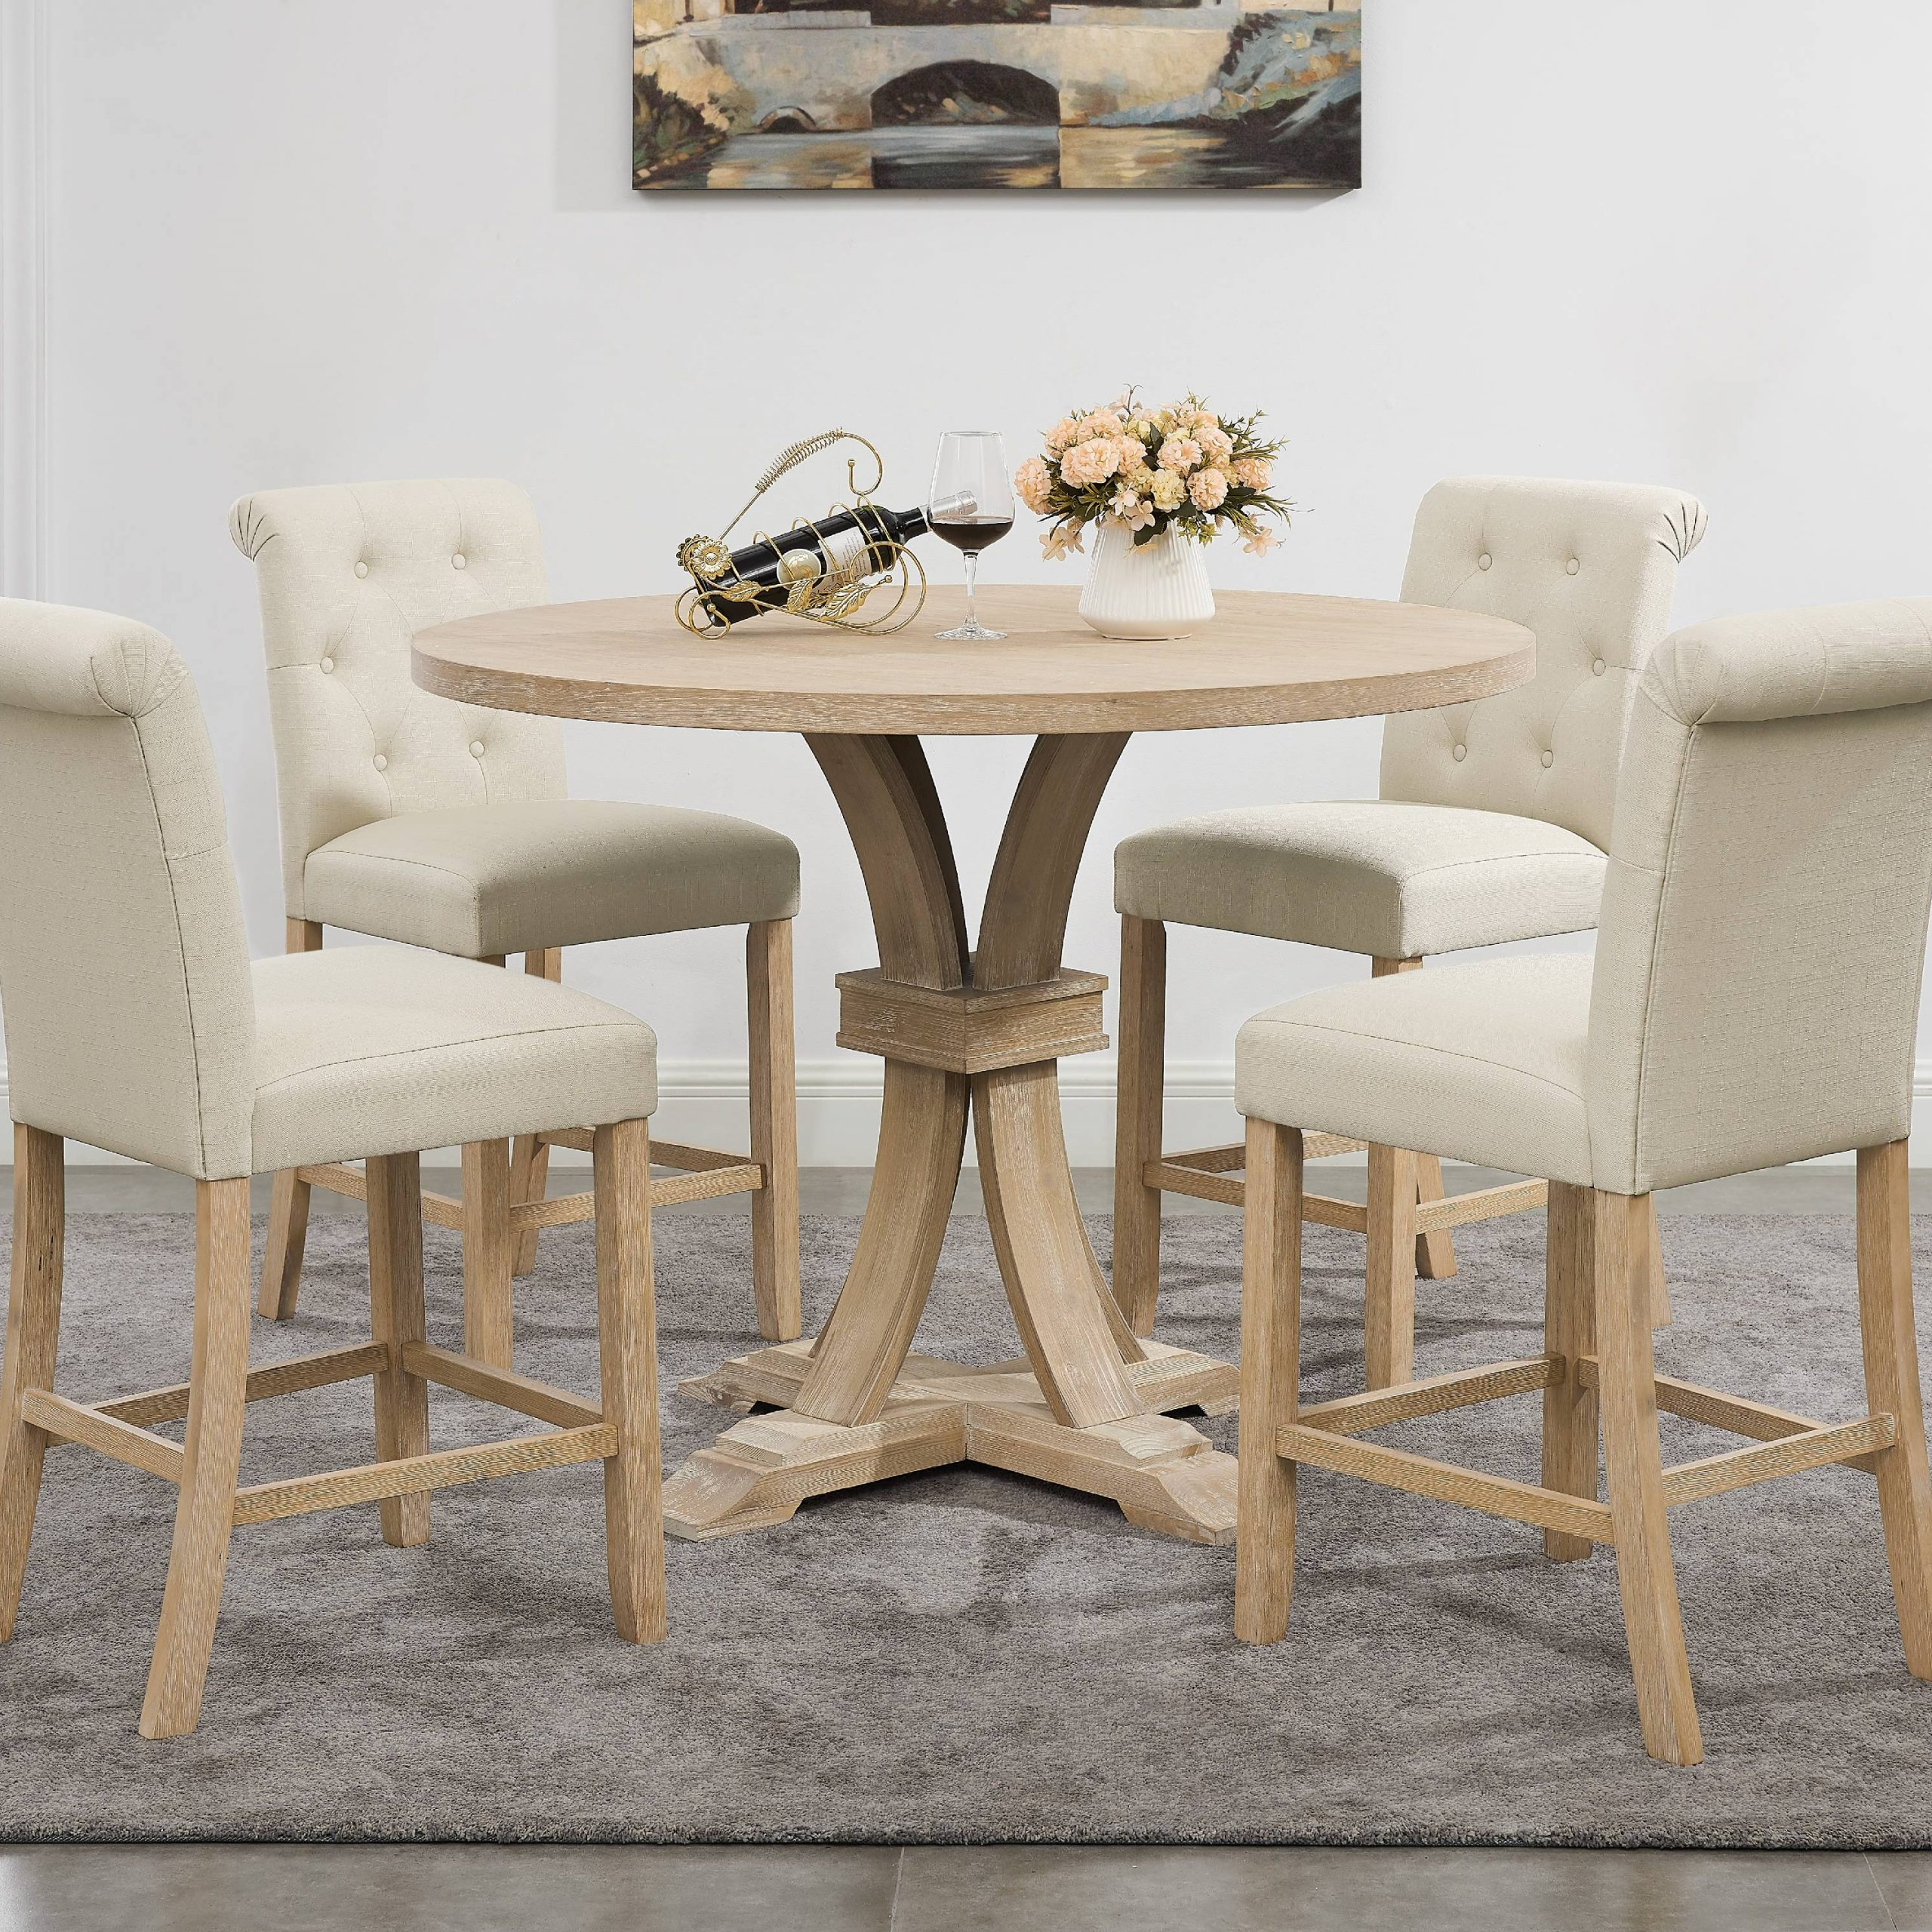 Siena White Washed Finished 5 Piece Counter Height Dining Regarding 2017 Andreniki Bar Height Pedestal Dining Tables (View 4 of 15)